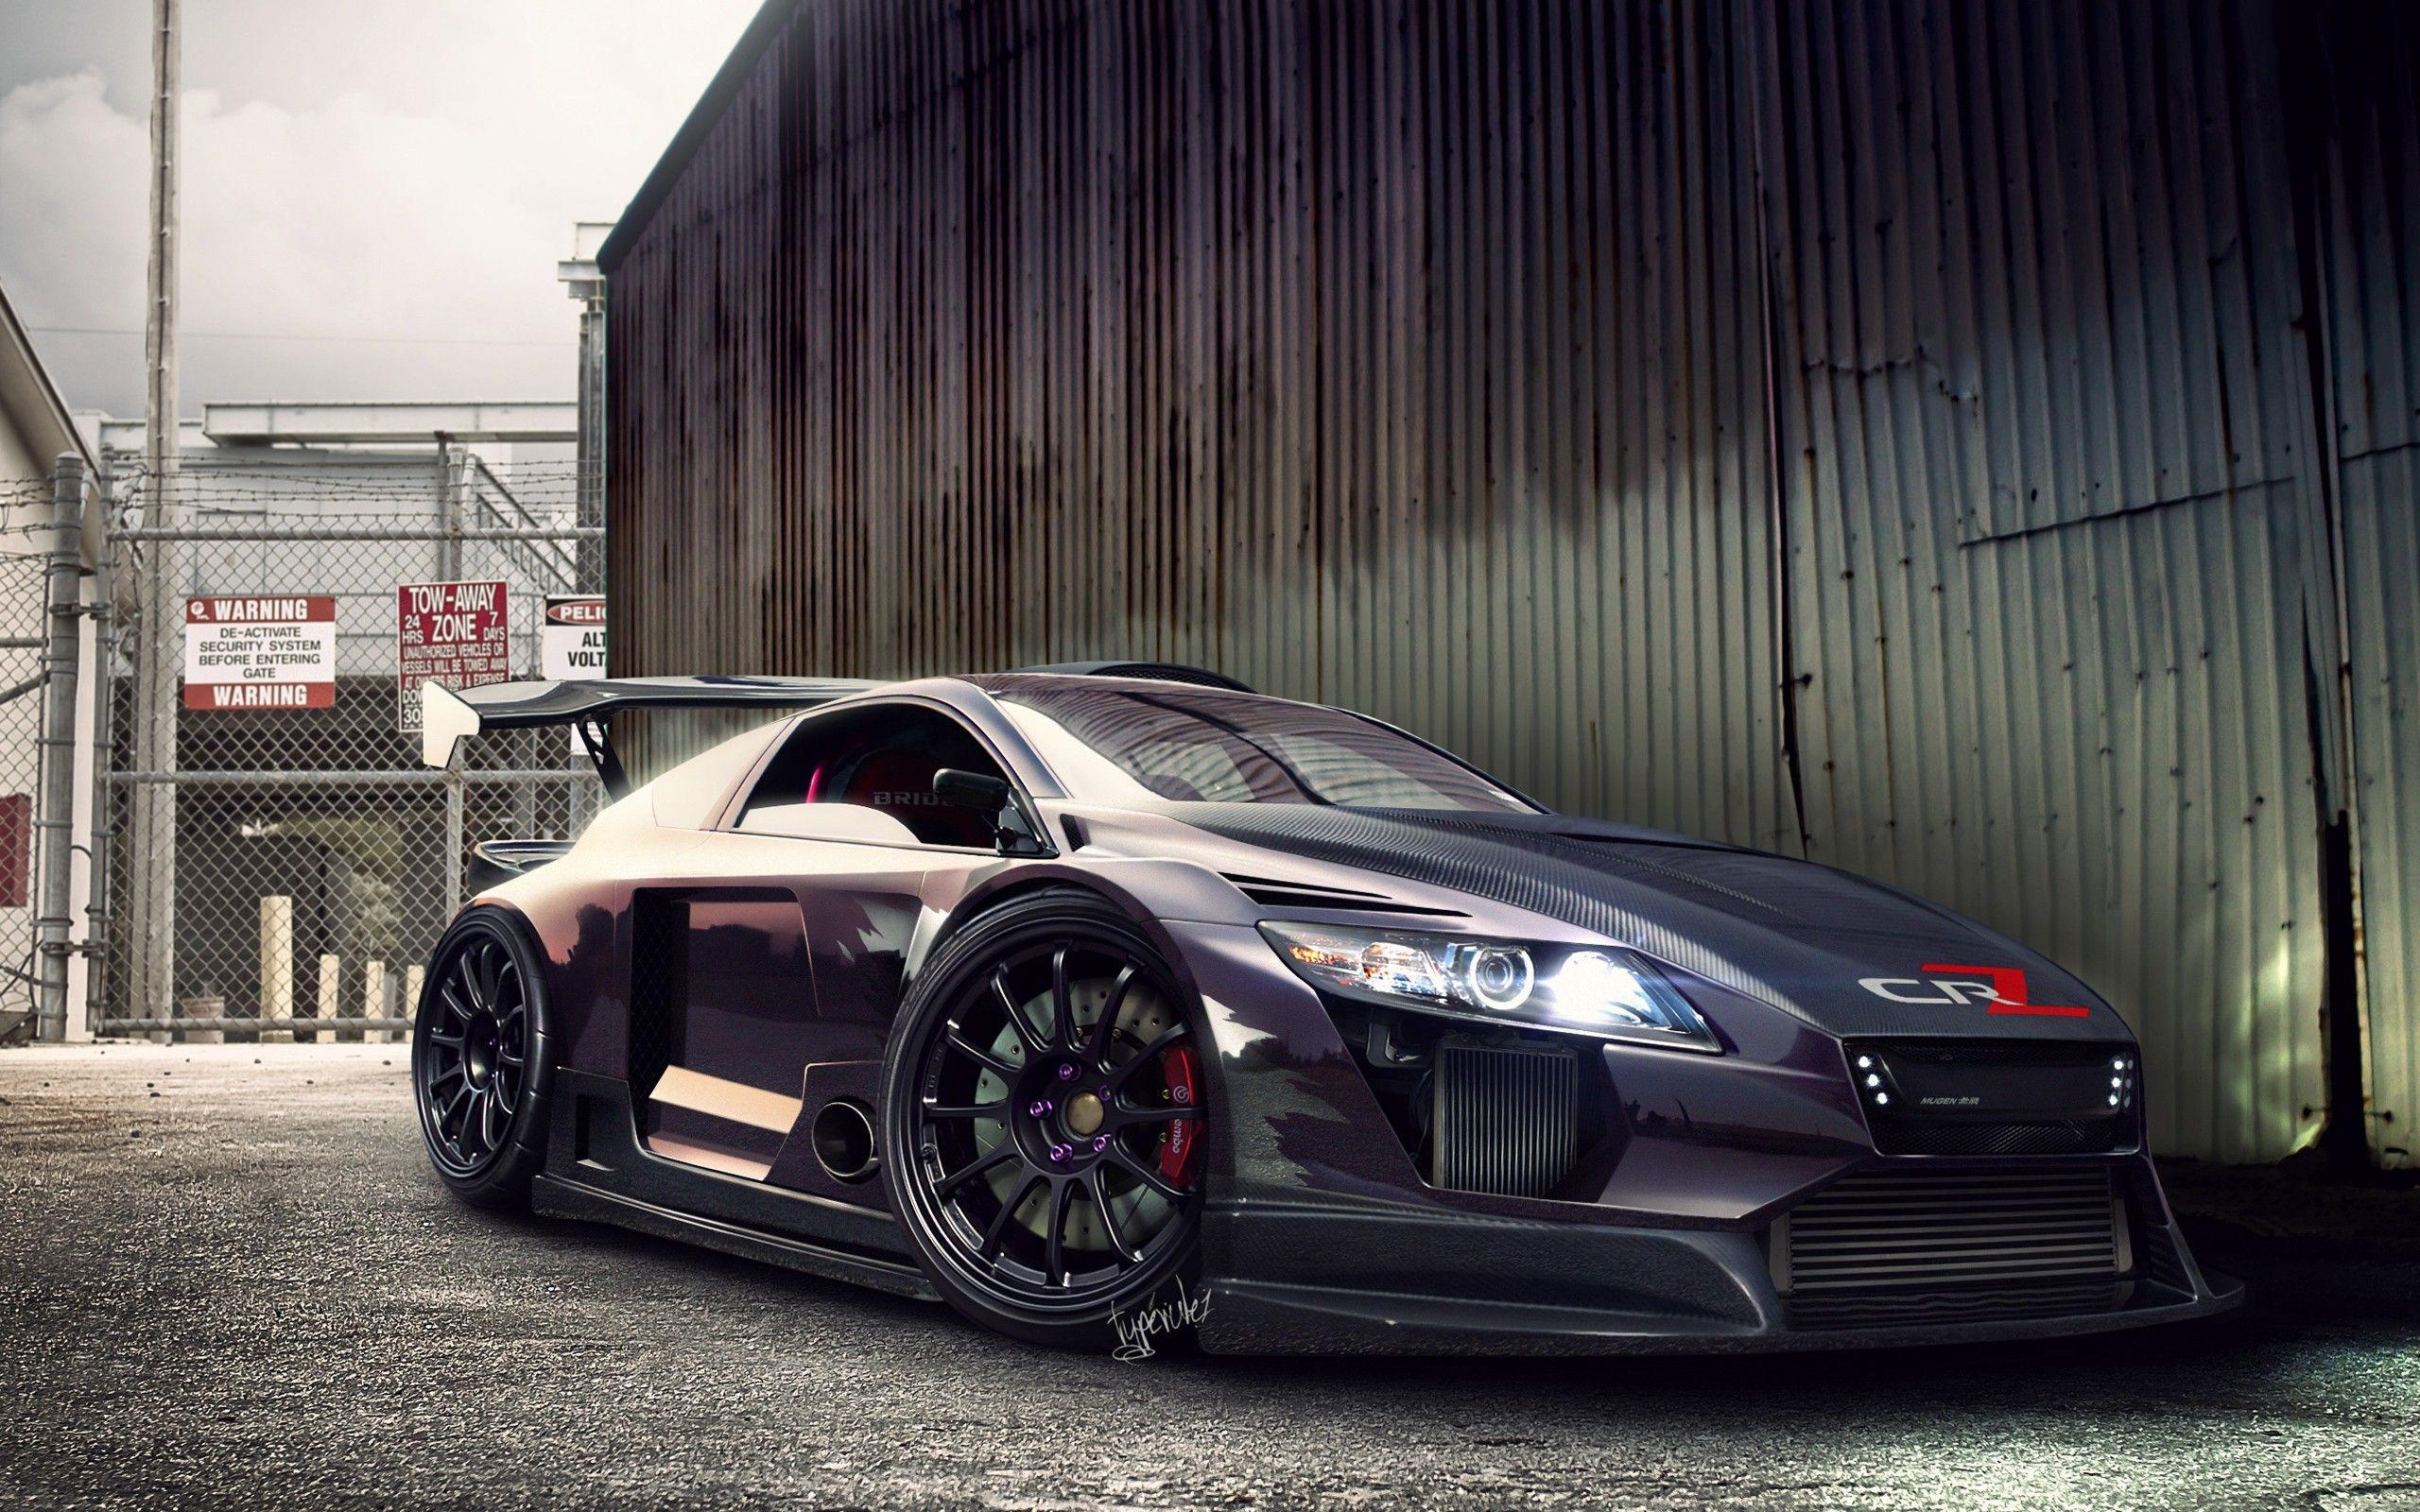 Tuner cars wallpapers (5) - HD Cars Wallpapers | HD Cars Wallpapers